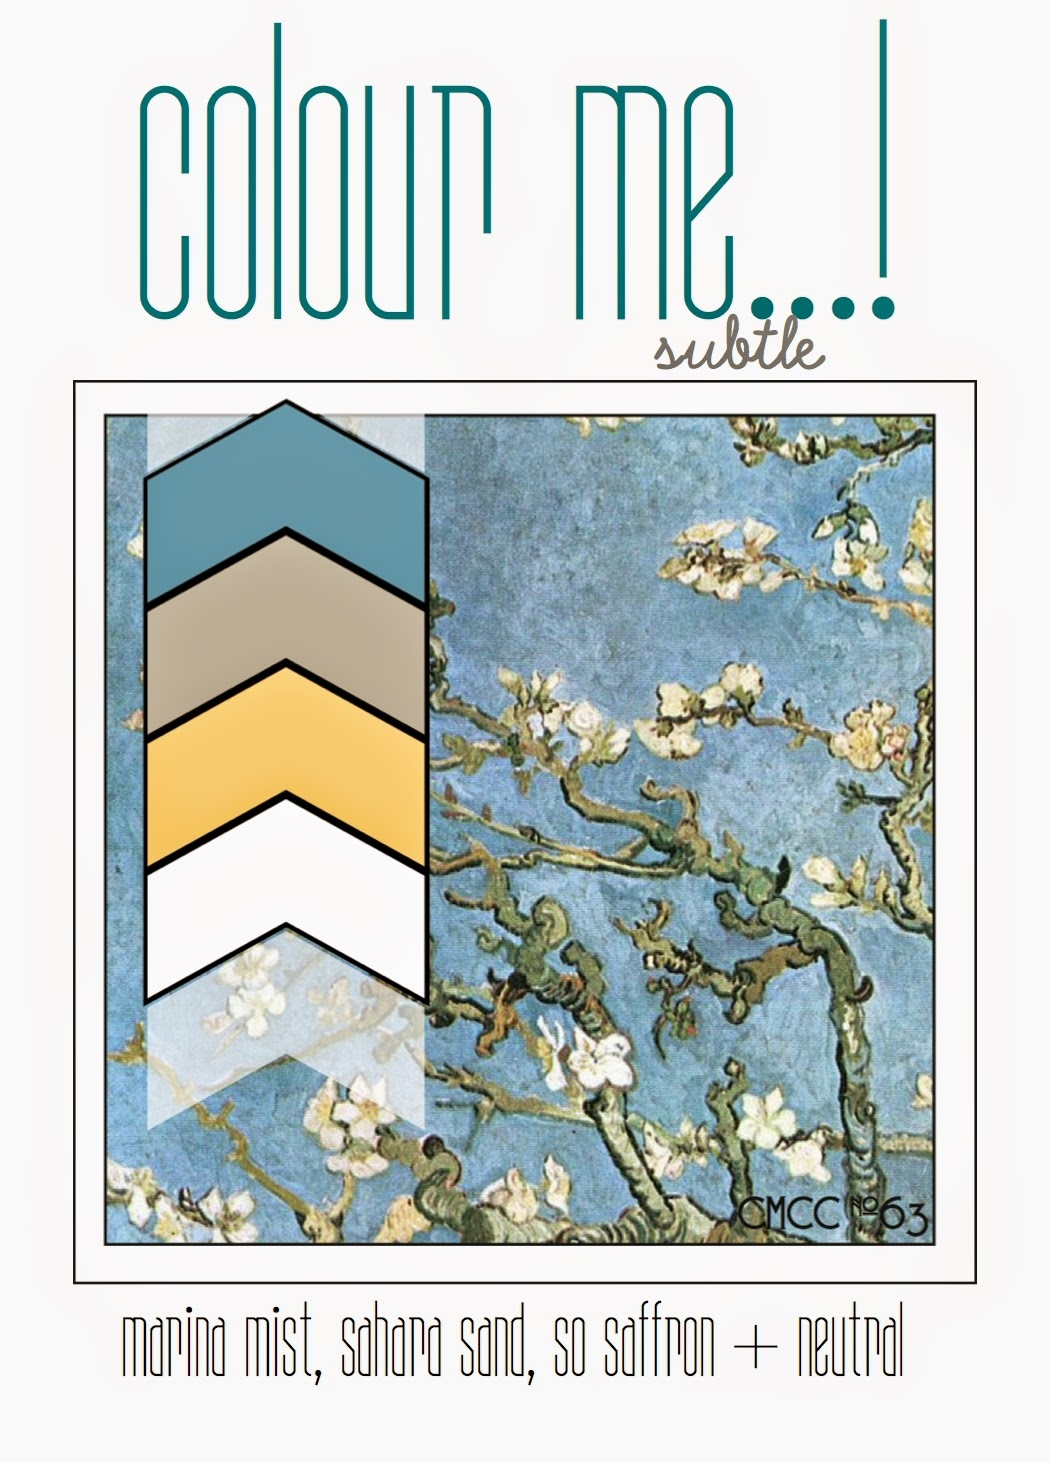 http://colourmecardchallenge.blogspot.com/2015/03/cmcc63-colour-me-subtle.html